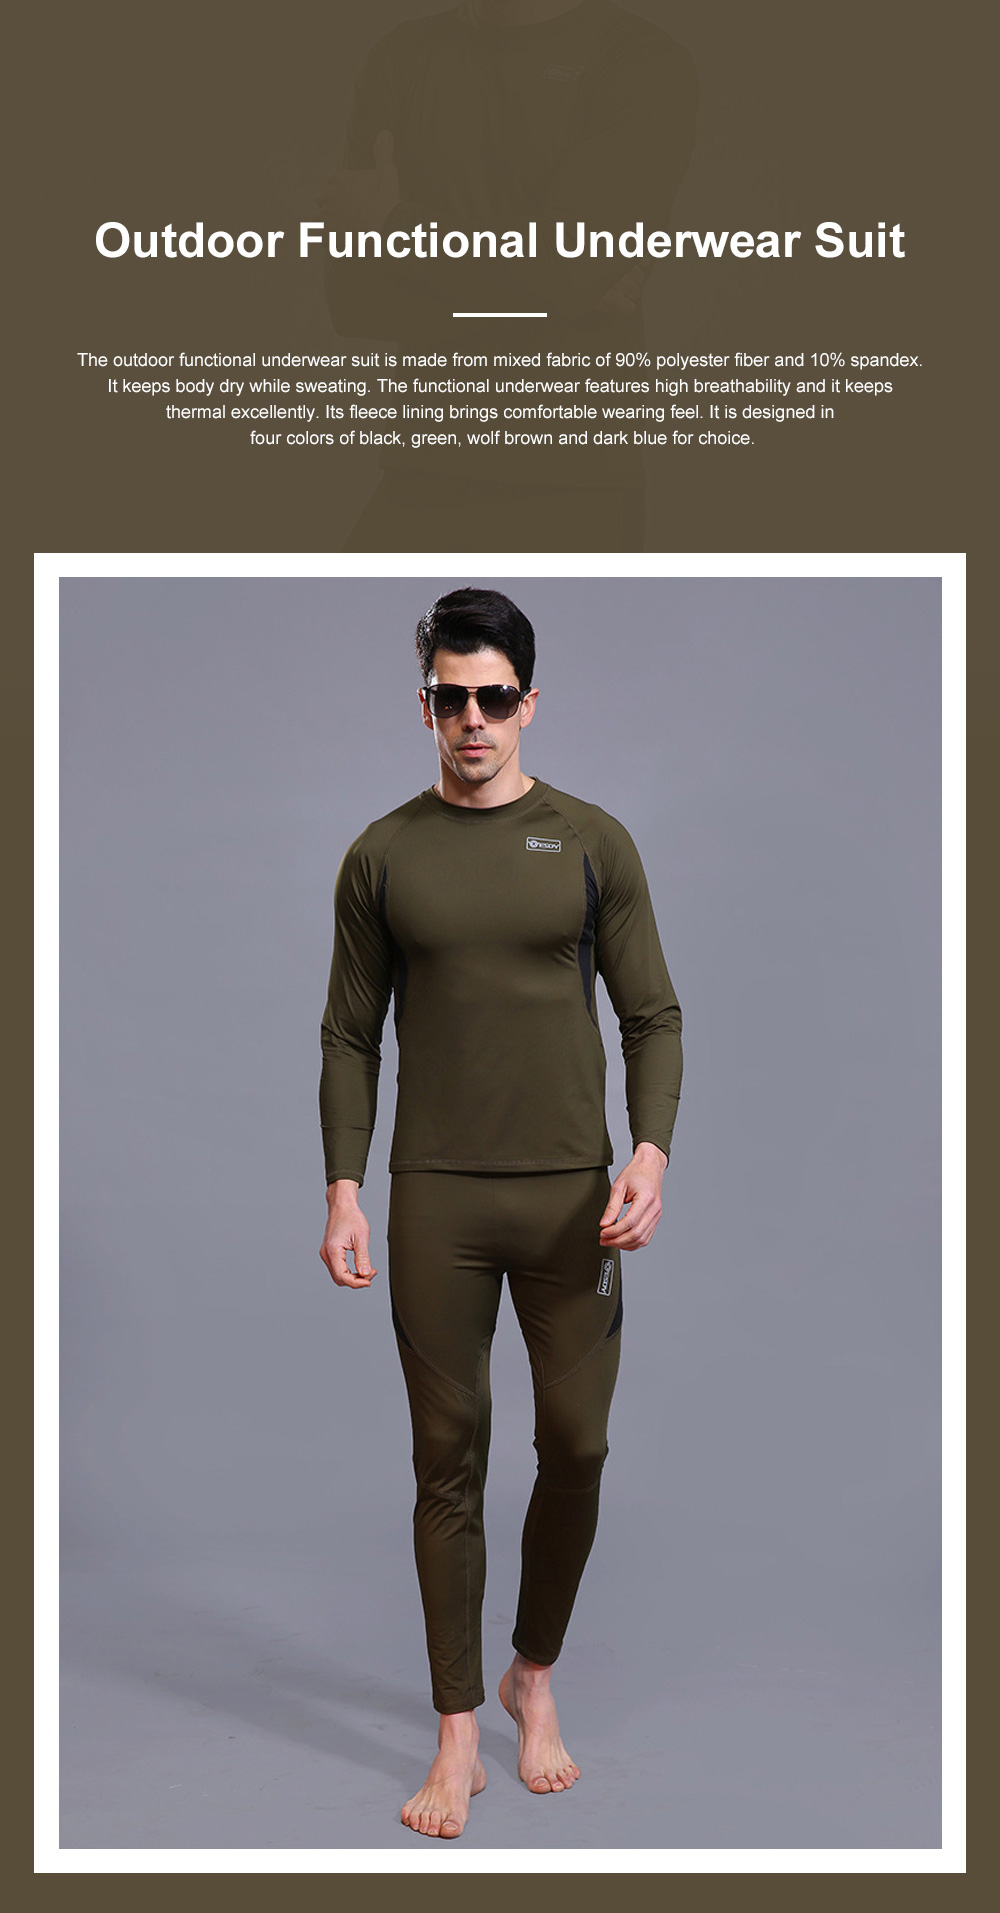 Outdoor Functional Underwear Suit for Outdoors Climbing Bicycle Riding Thermal Fleece Underwear Sweat Suit PT Uniform 0